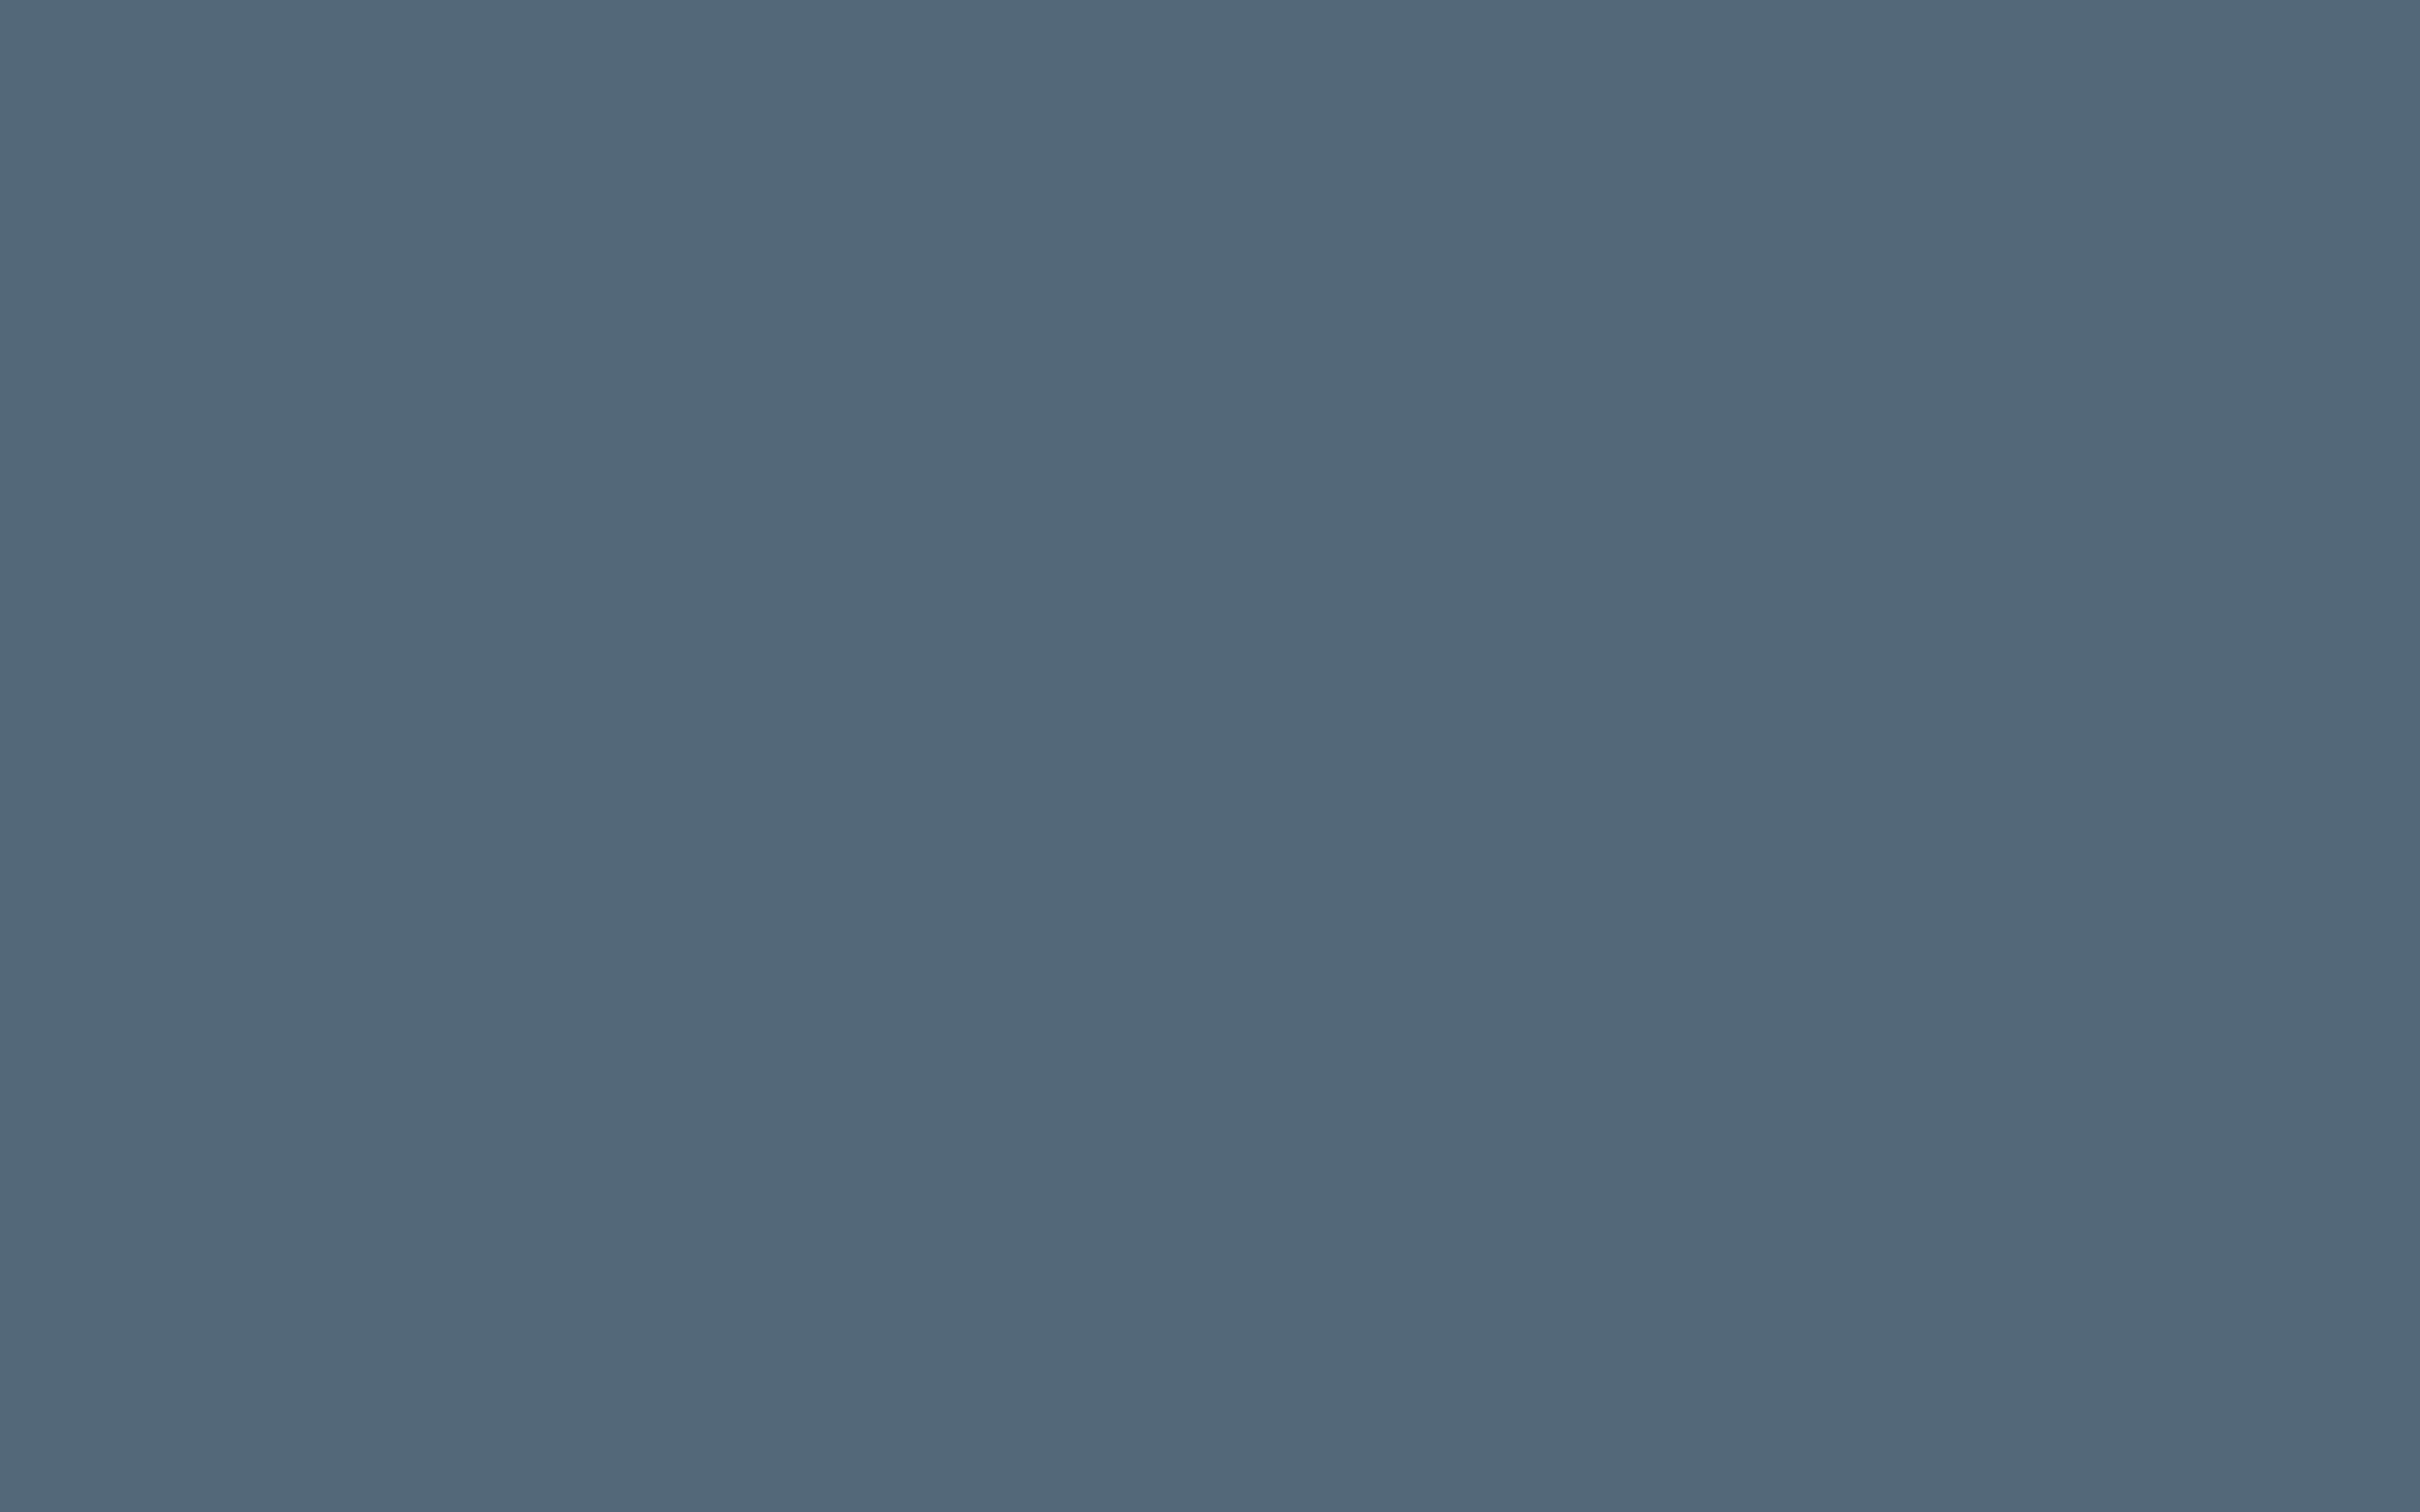 2880x1800 dark electric blue solid color background